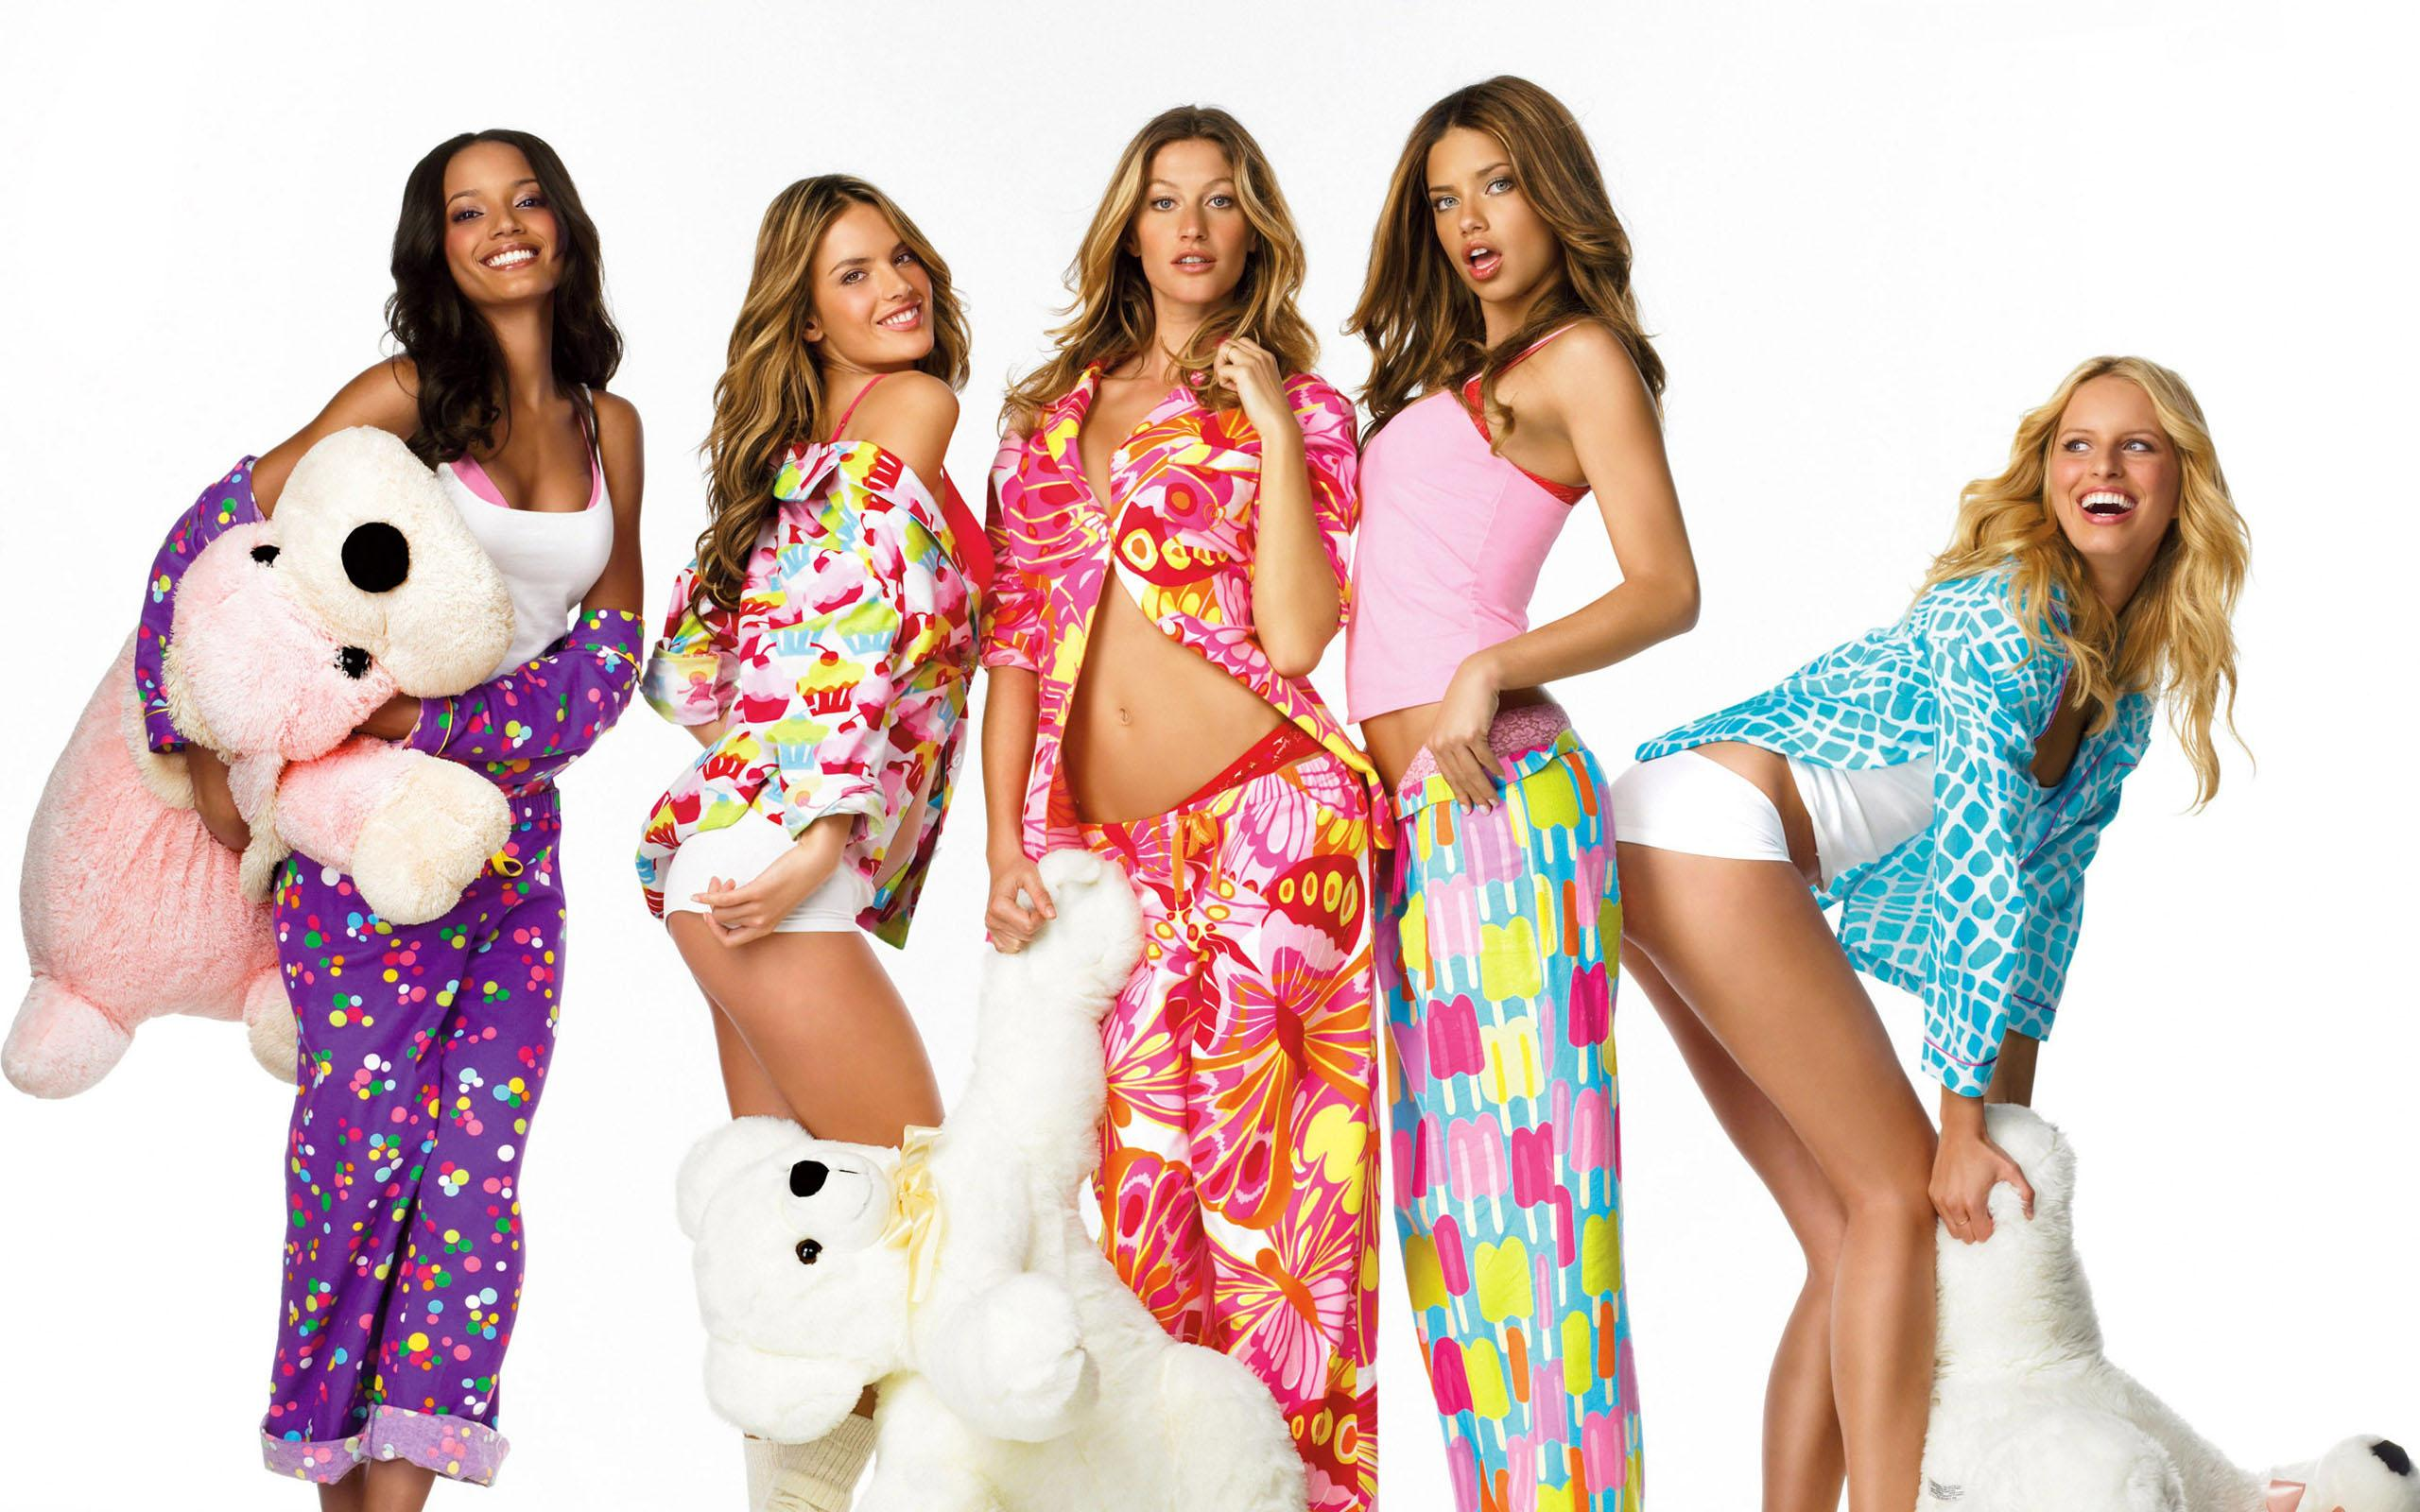 Women S Secret Toys : Victoria s secret pajama party women fashion glamour